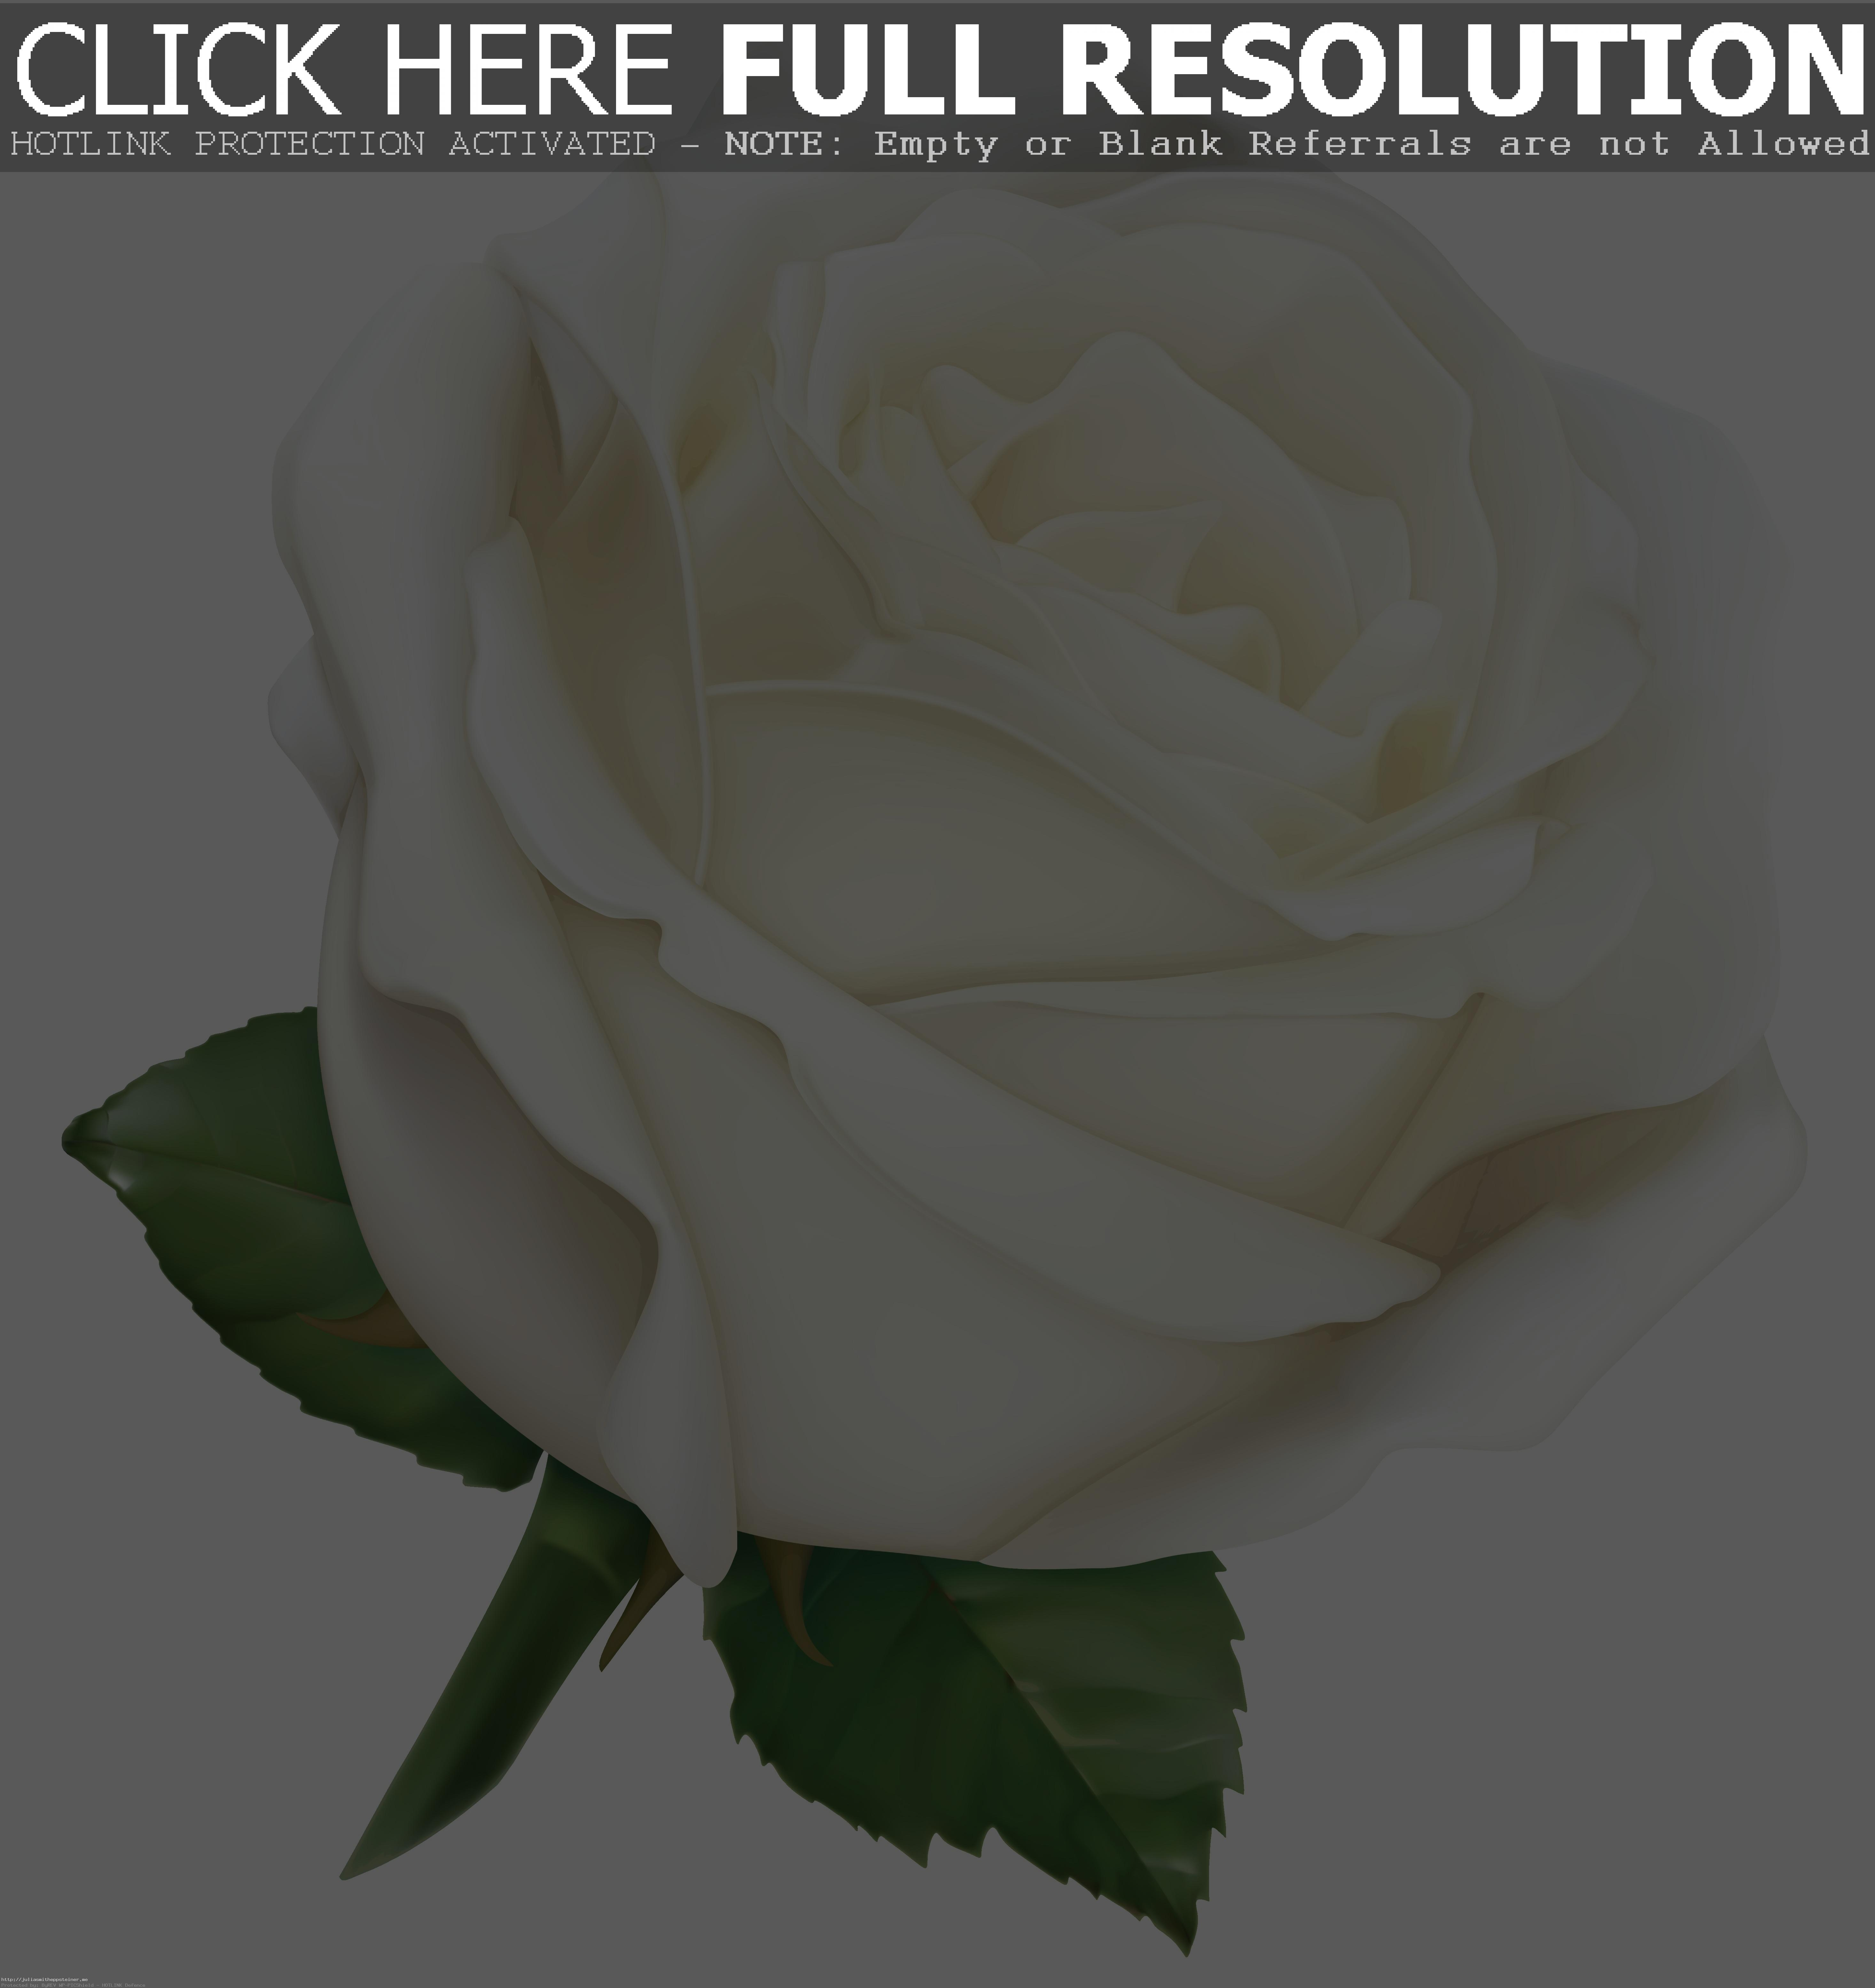 . ClipartLook.com Large White Rose PNG C-. ClipartLook.com Large White Rose PNG Clipart Image Gallery Yopriceville High ClipartLook.com -6